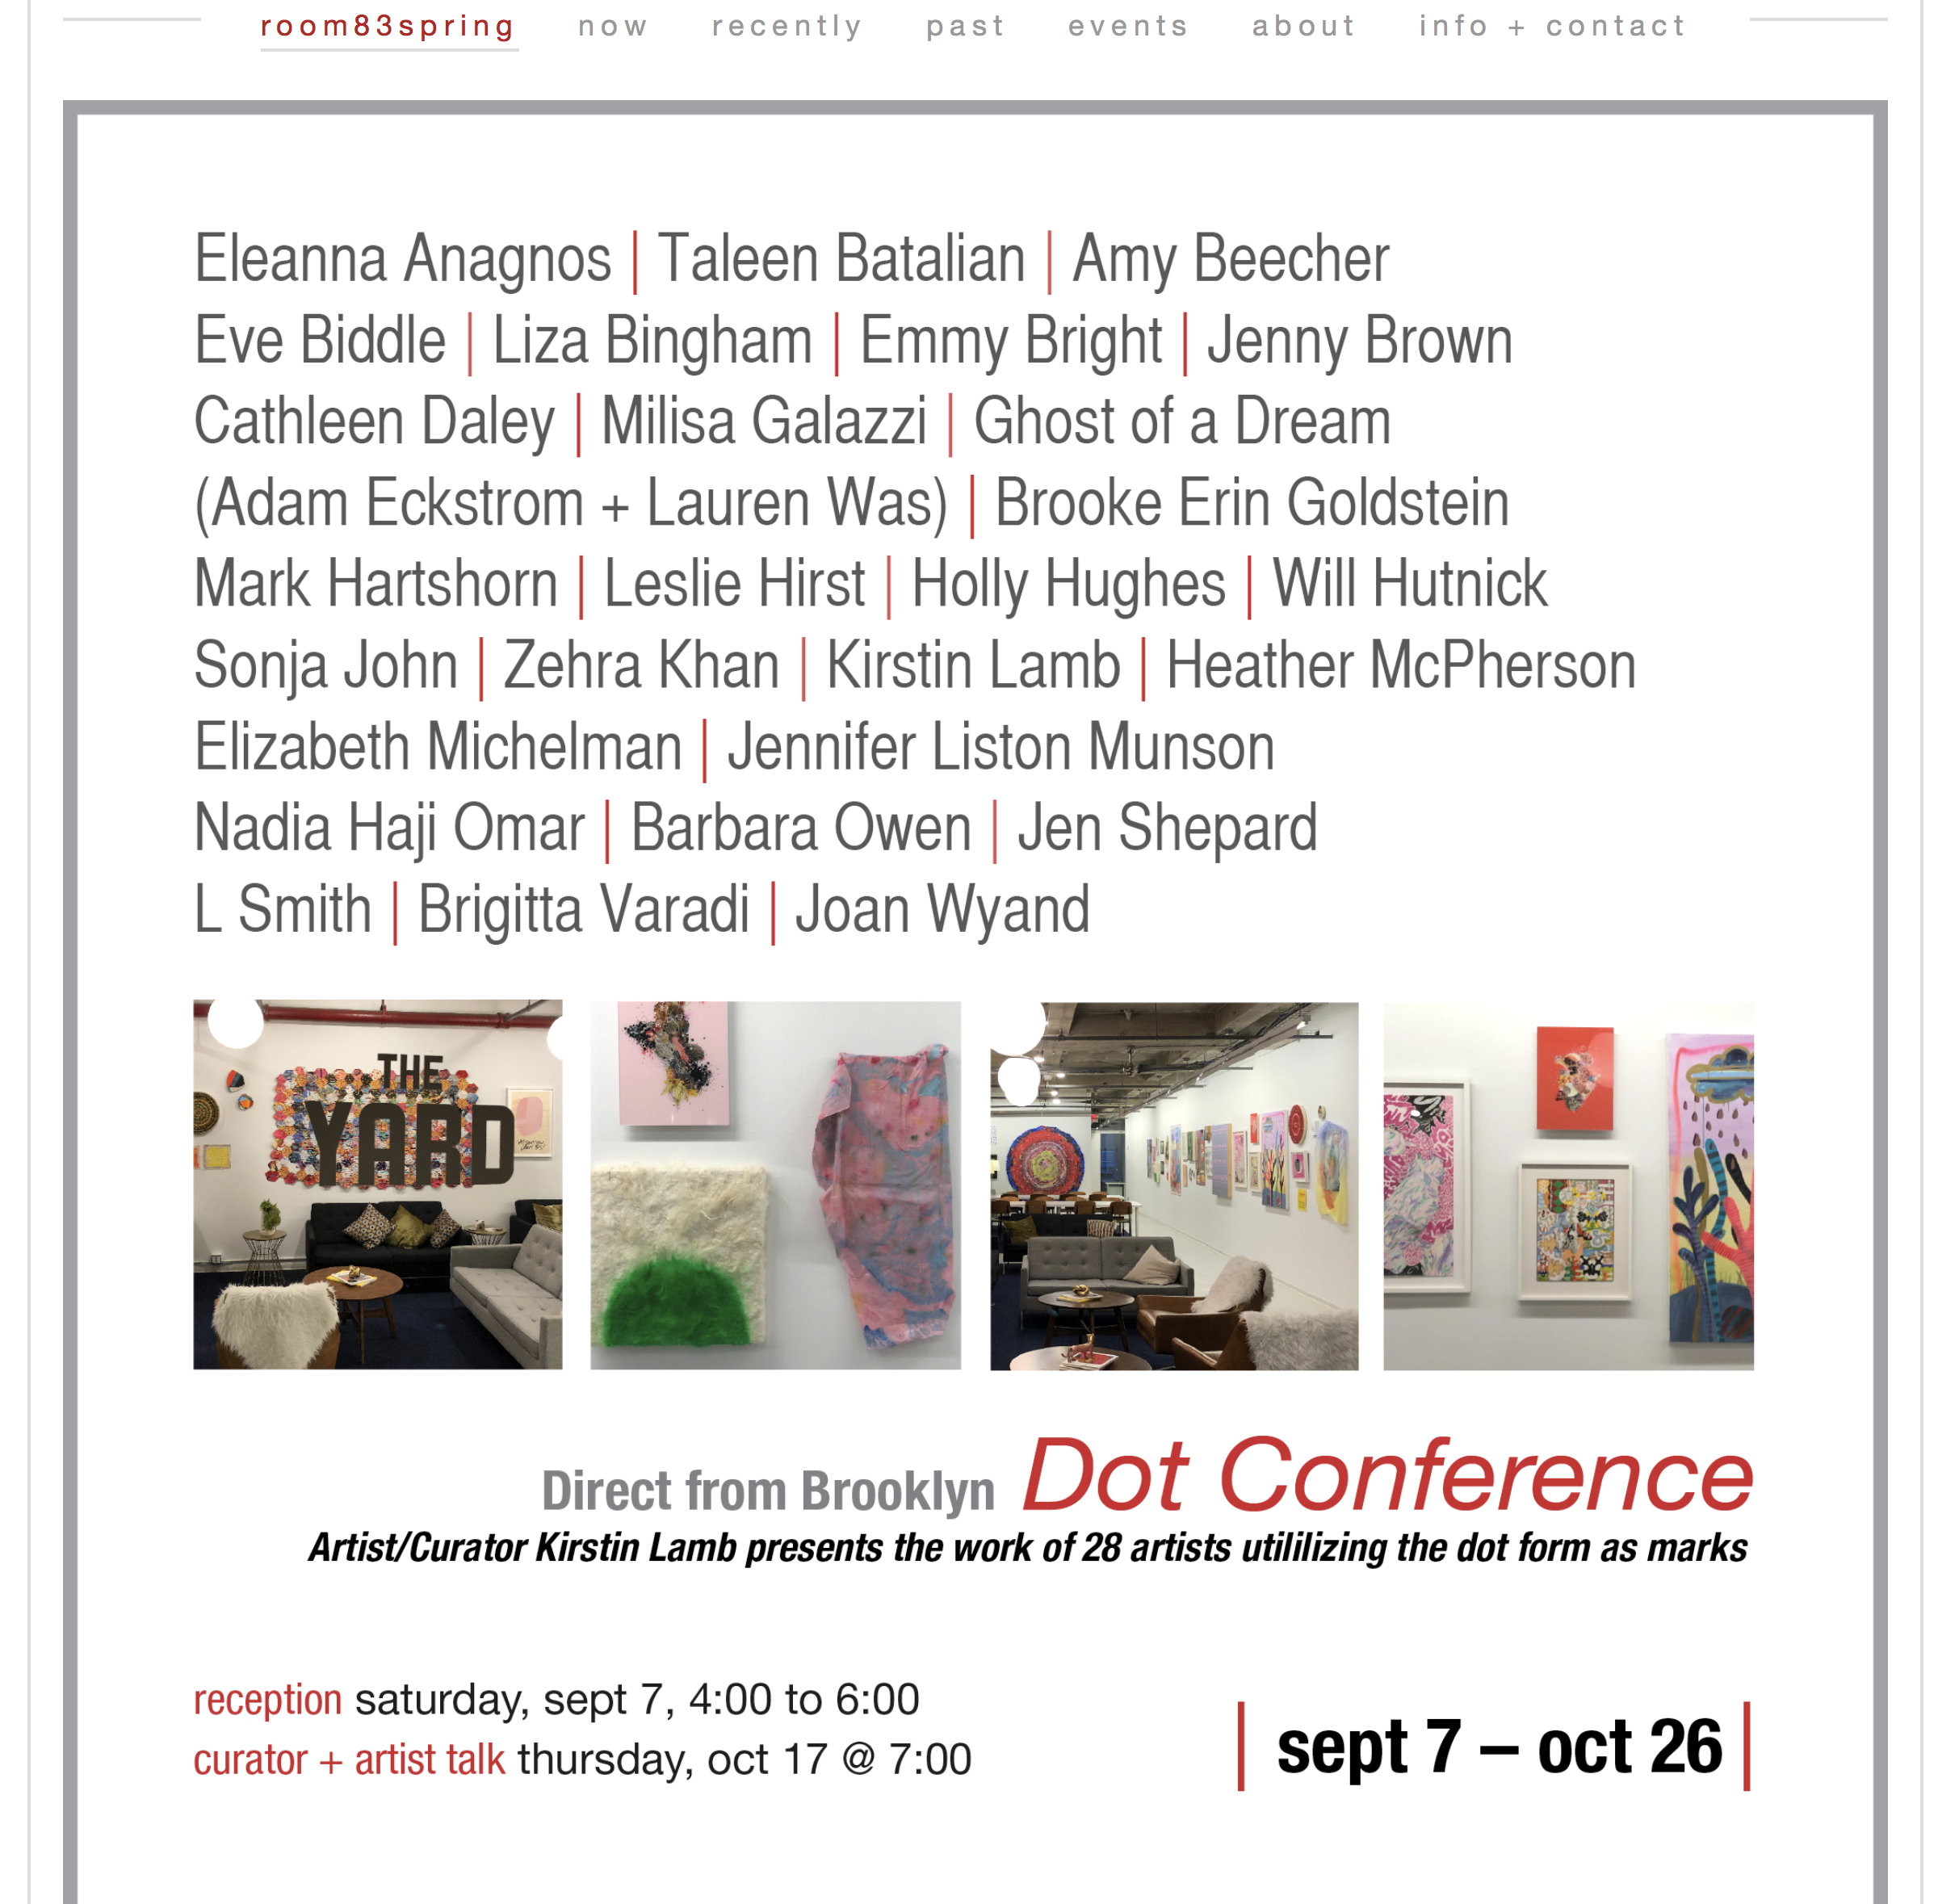 Dot Conference at Room 83 Spring